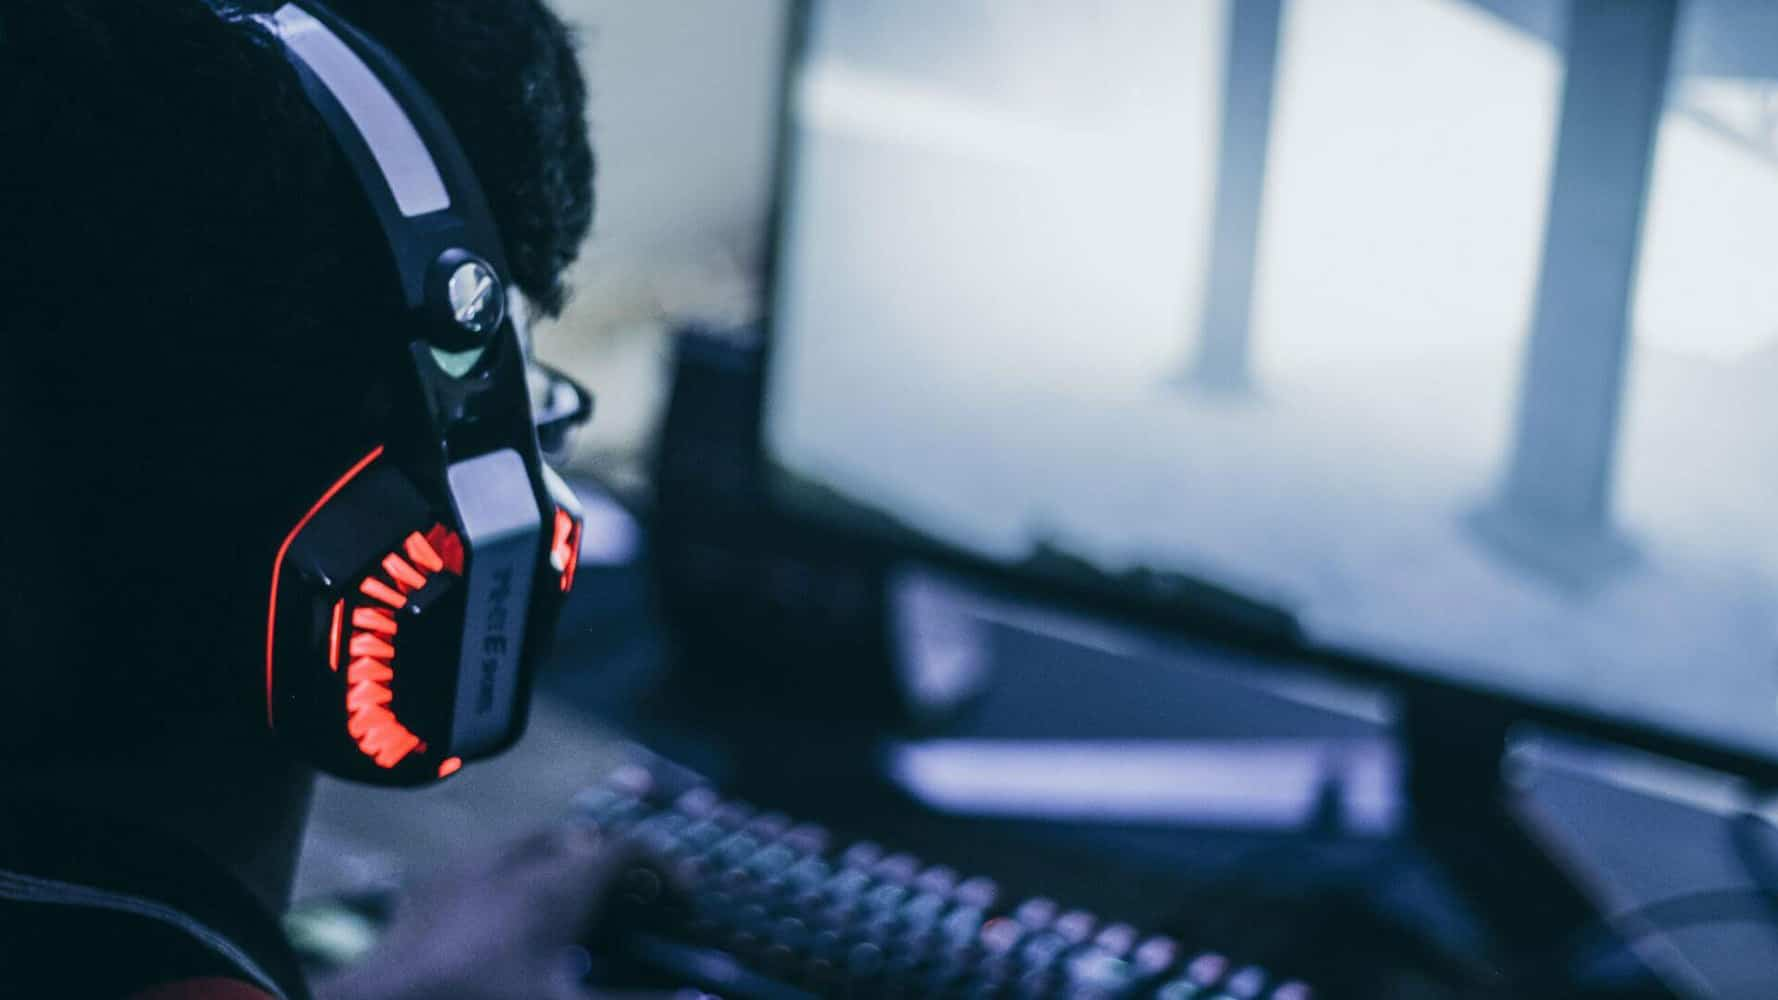 Our list for the best budget gaming headsets for 2020.